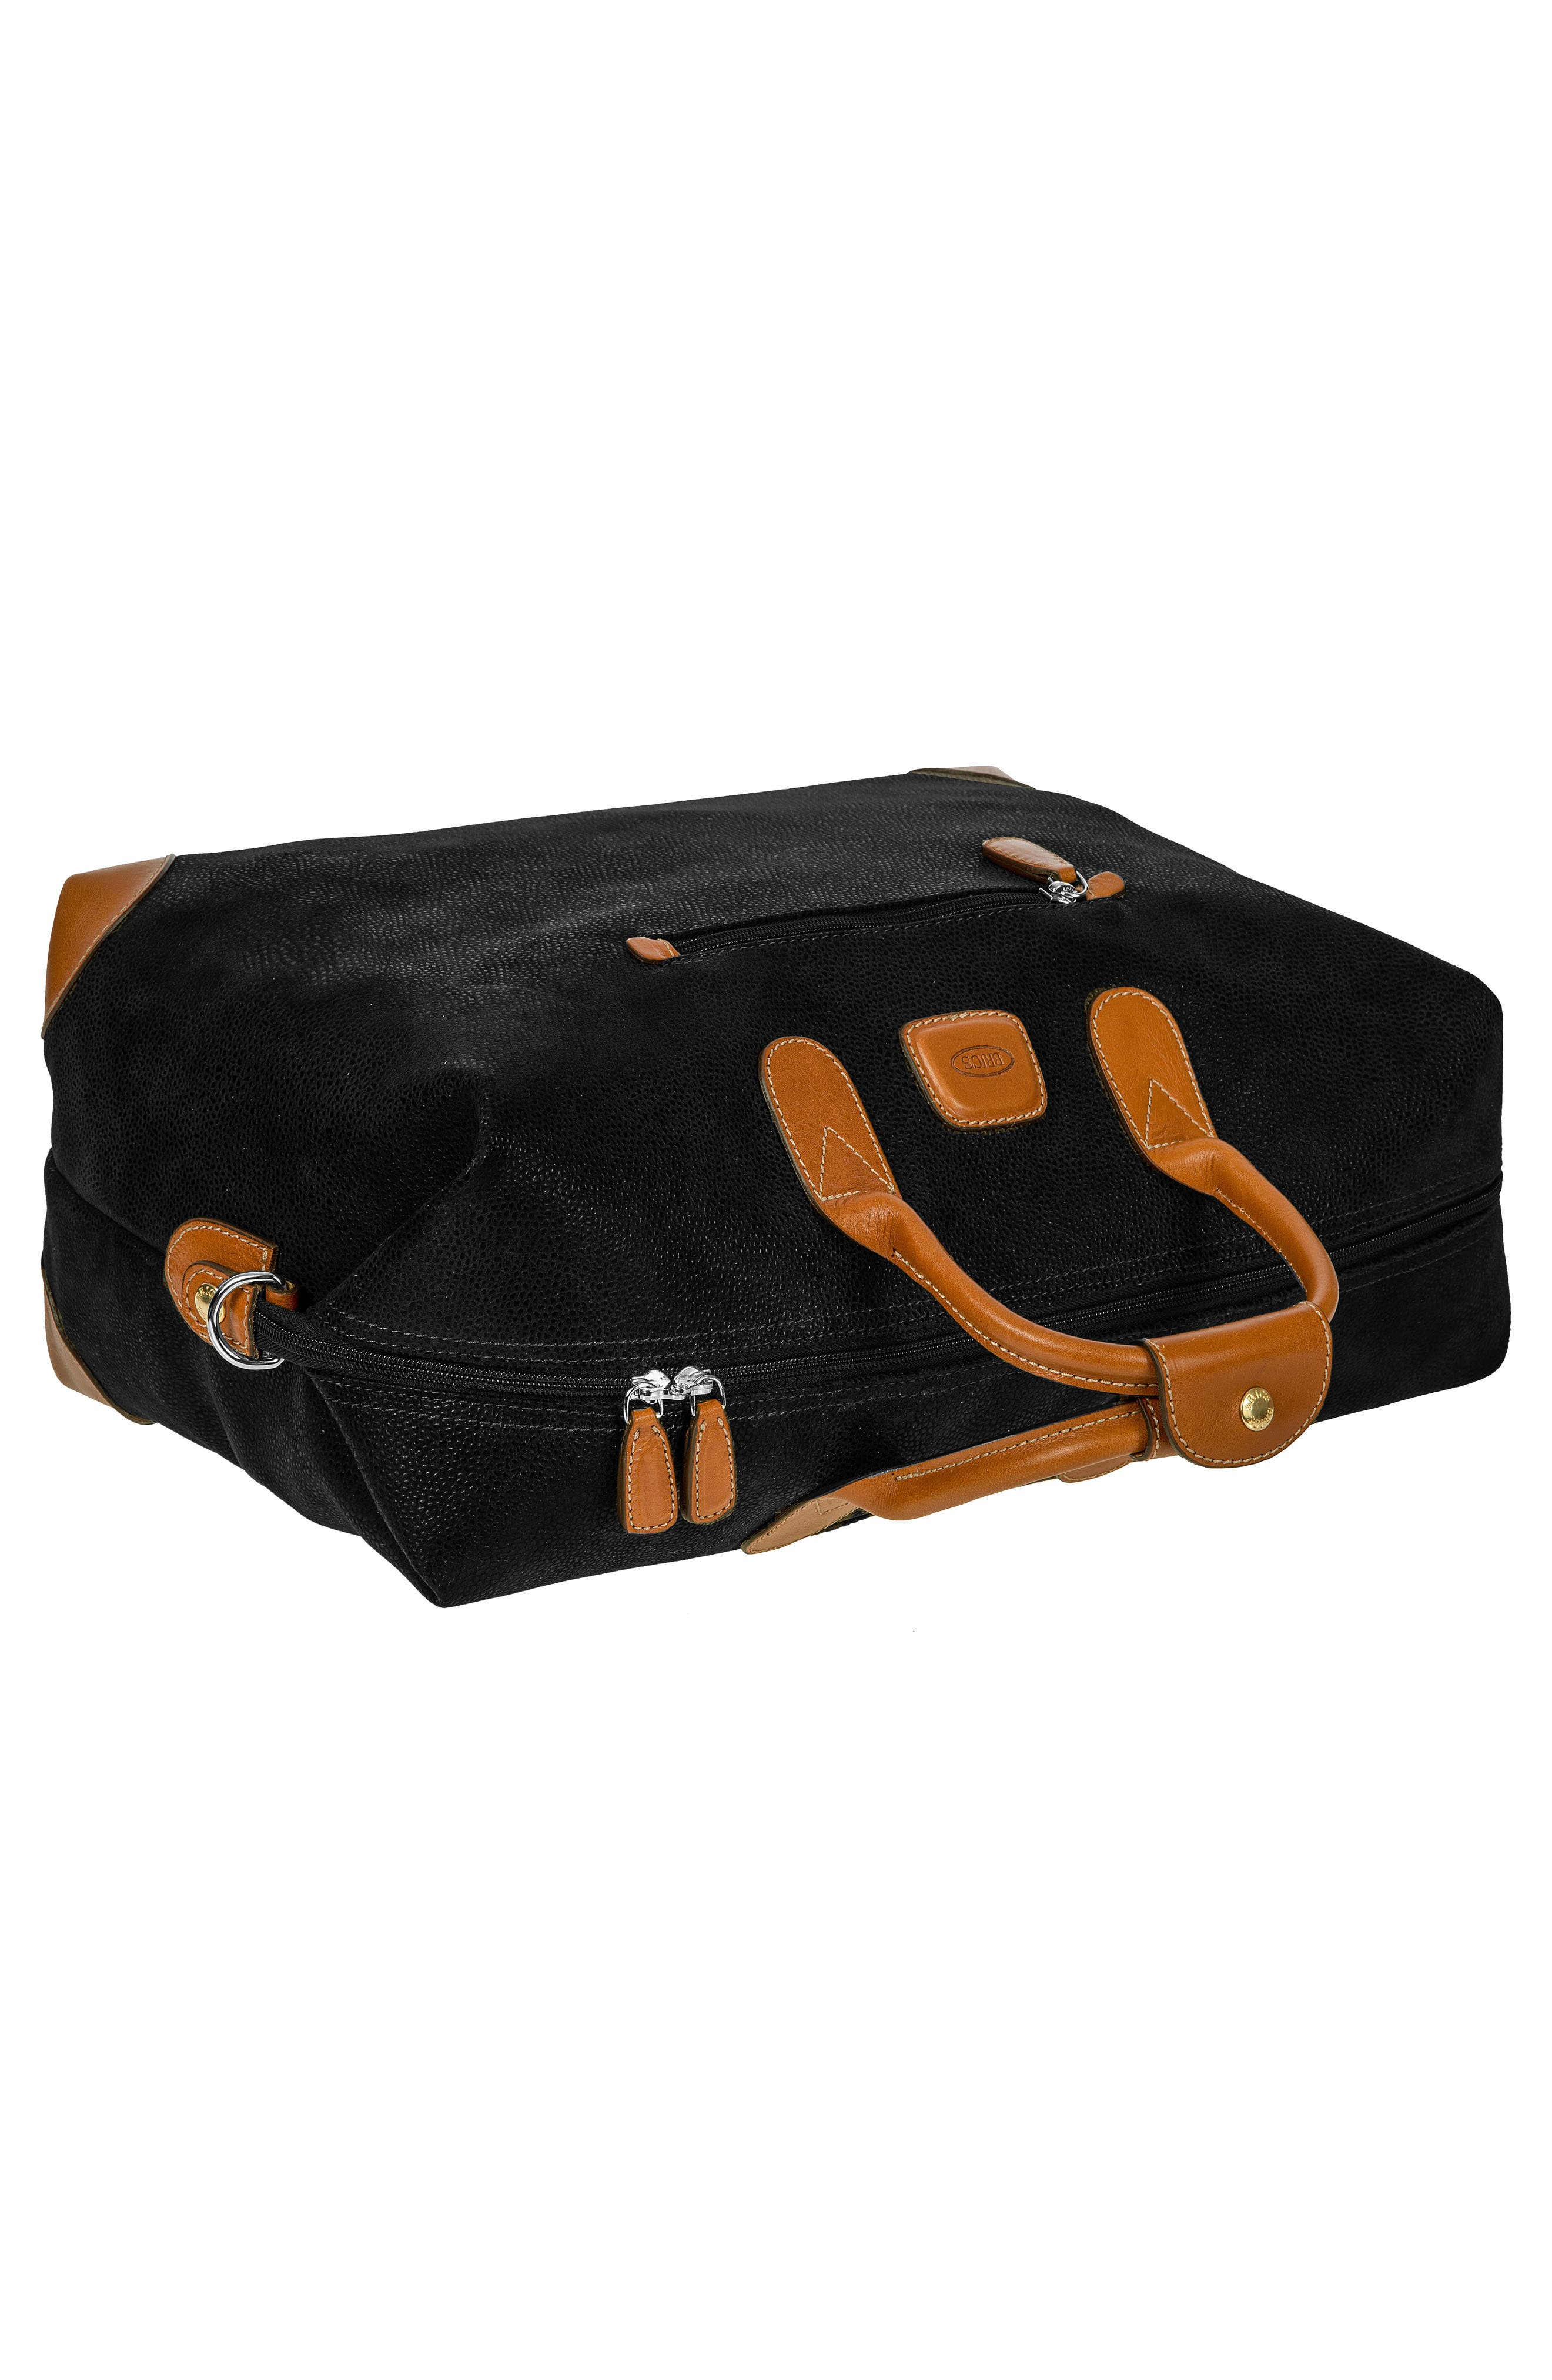 Life Collection 22-Inch Duffel Bag,                             Alternate thumbnail 16, color,